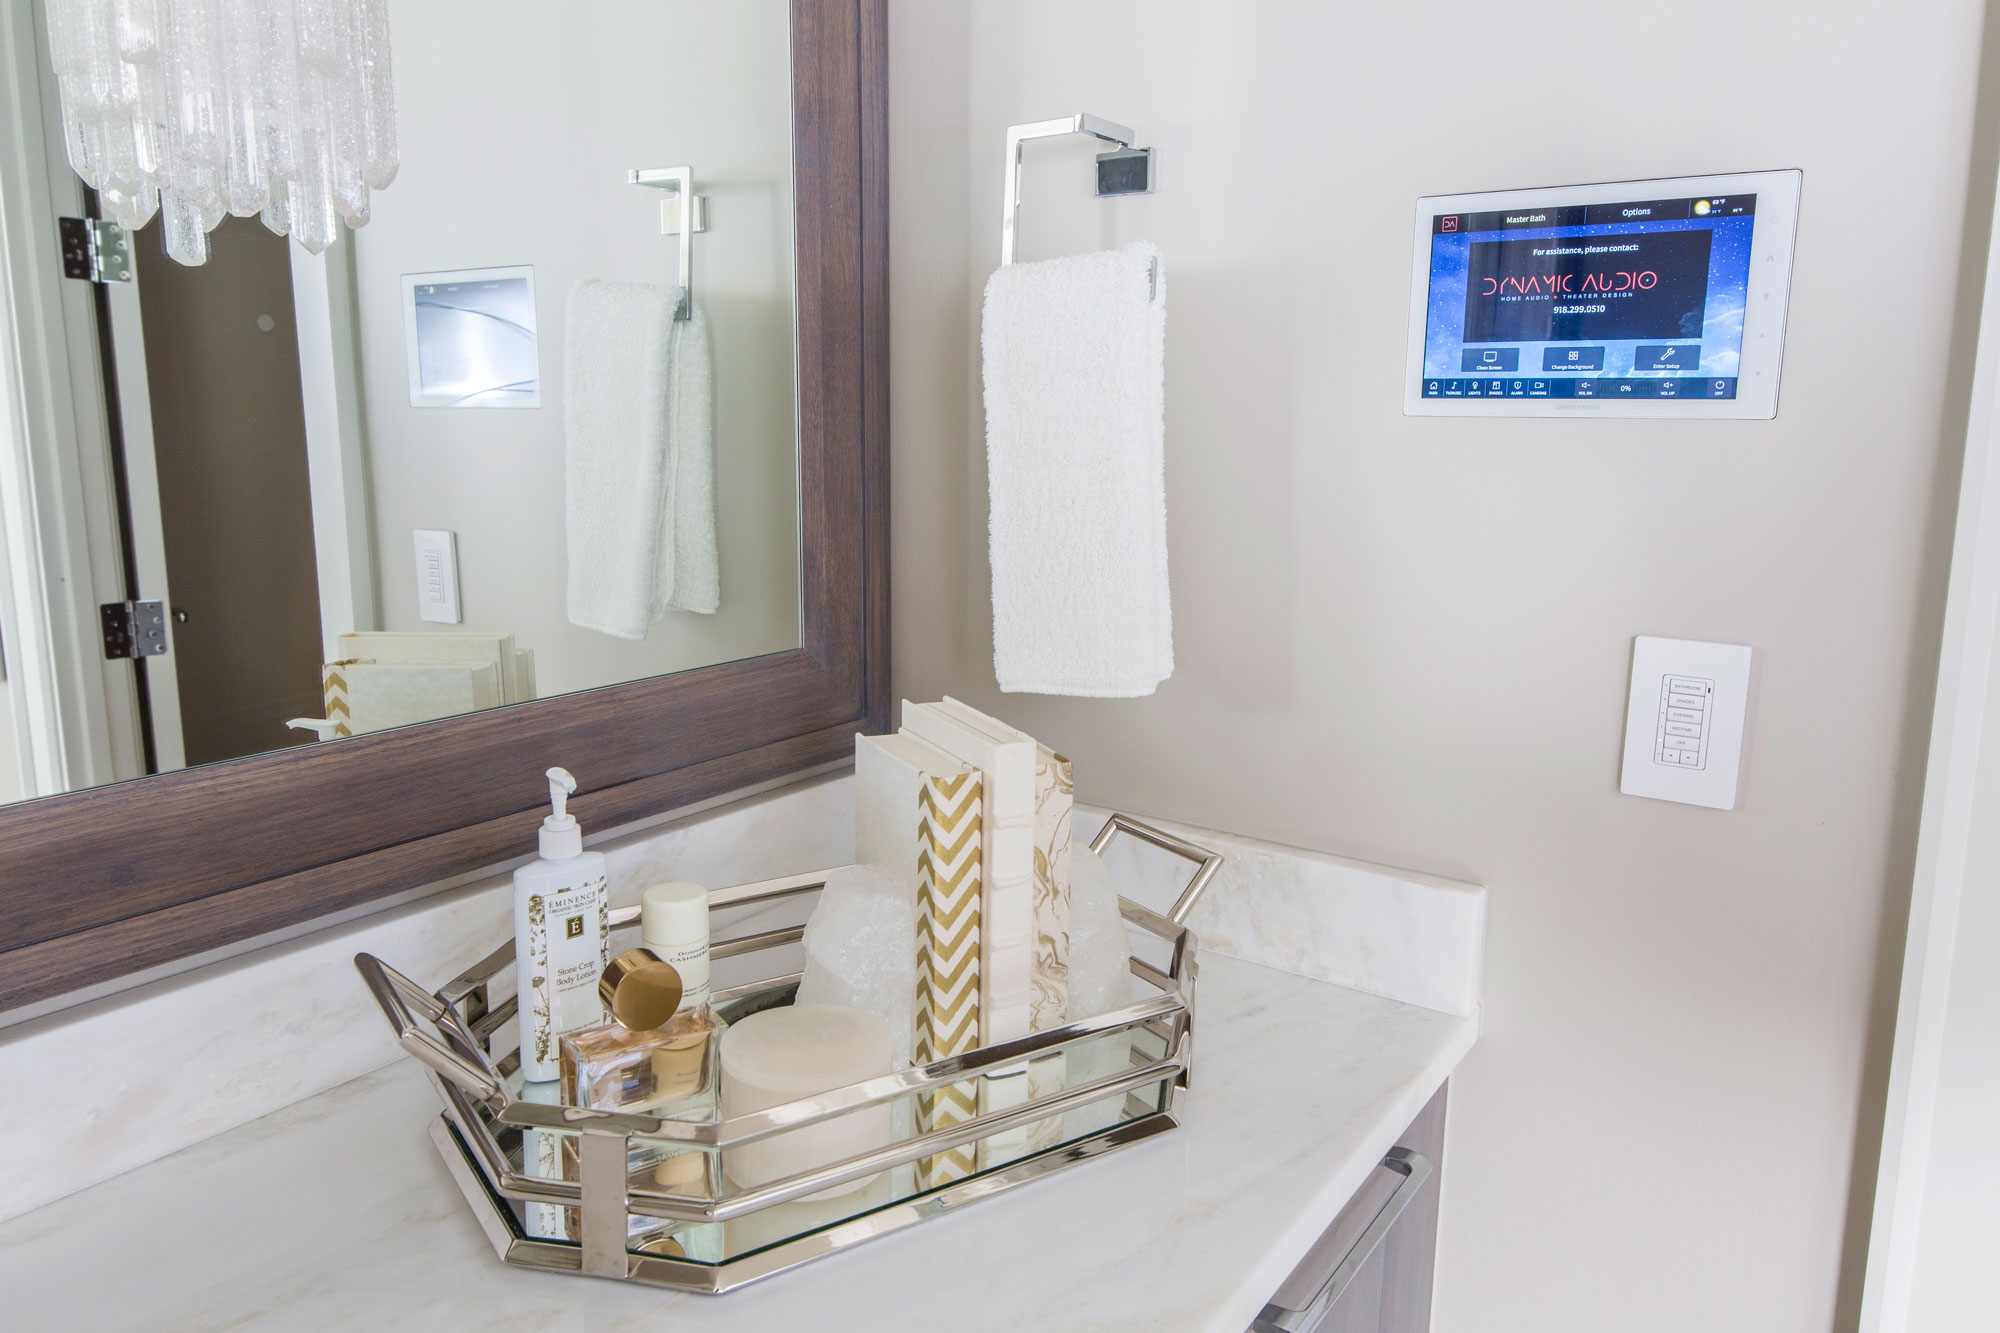 Automating Bathroom for Comfort